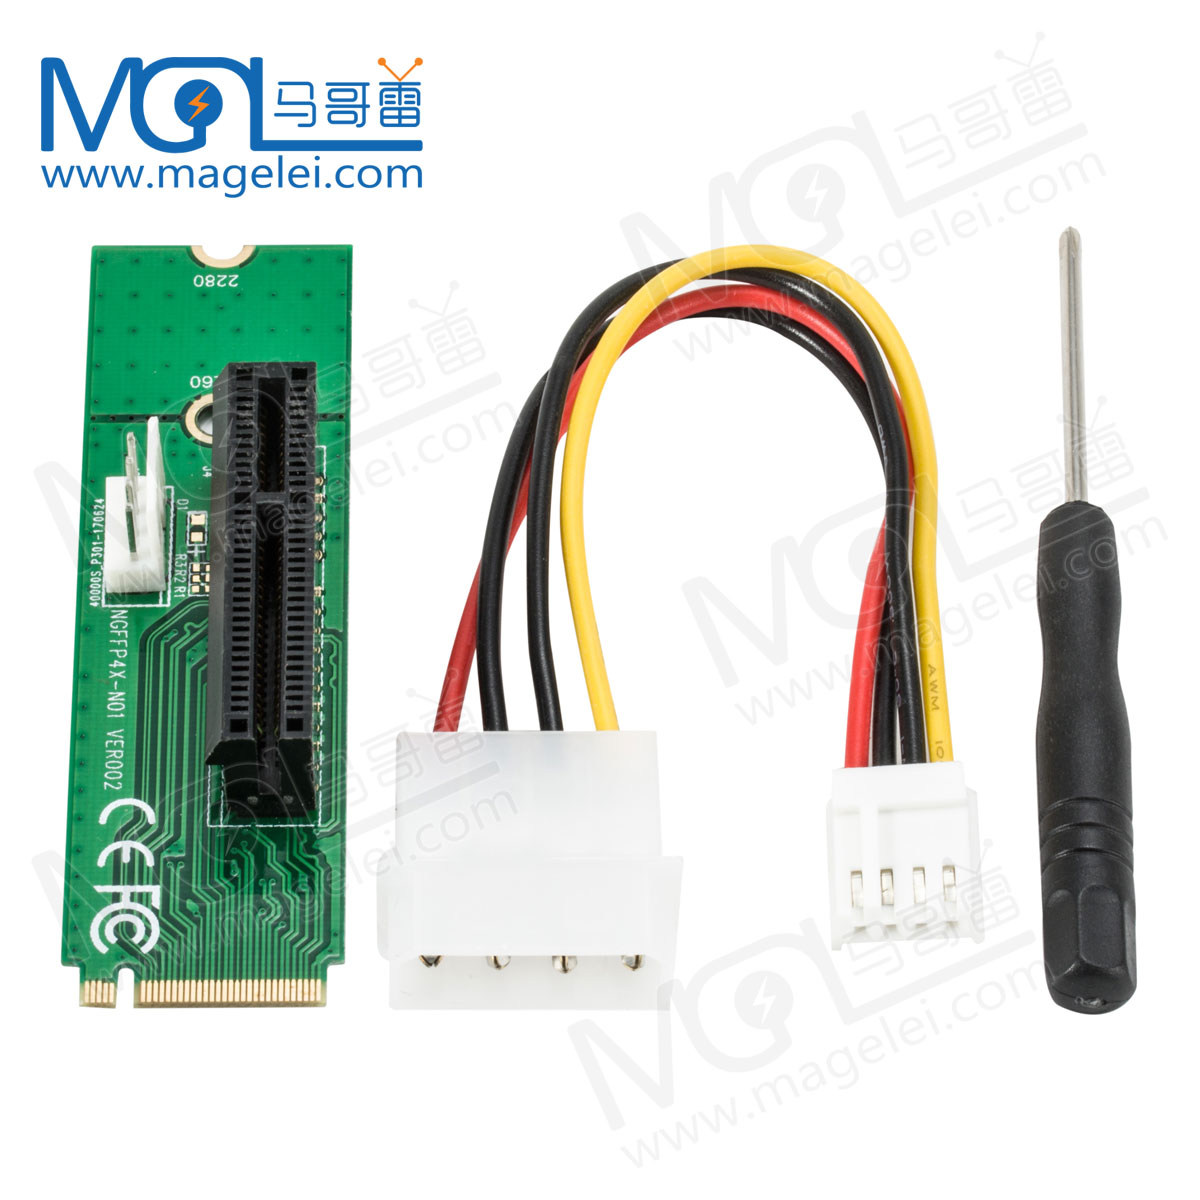 NGFF M.2 SSD to PCIE PCI-e Express 4X Converter Adapter Card  US Stock